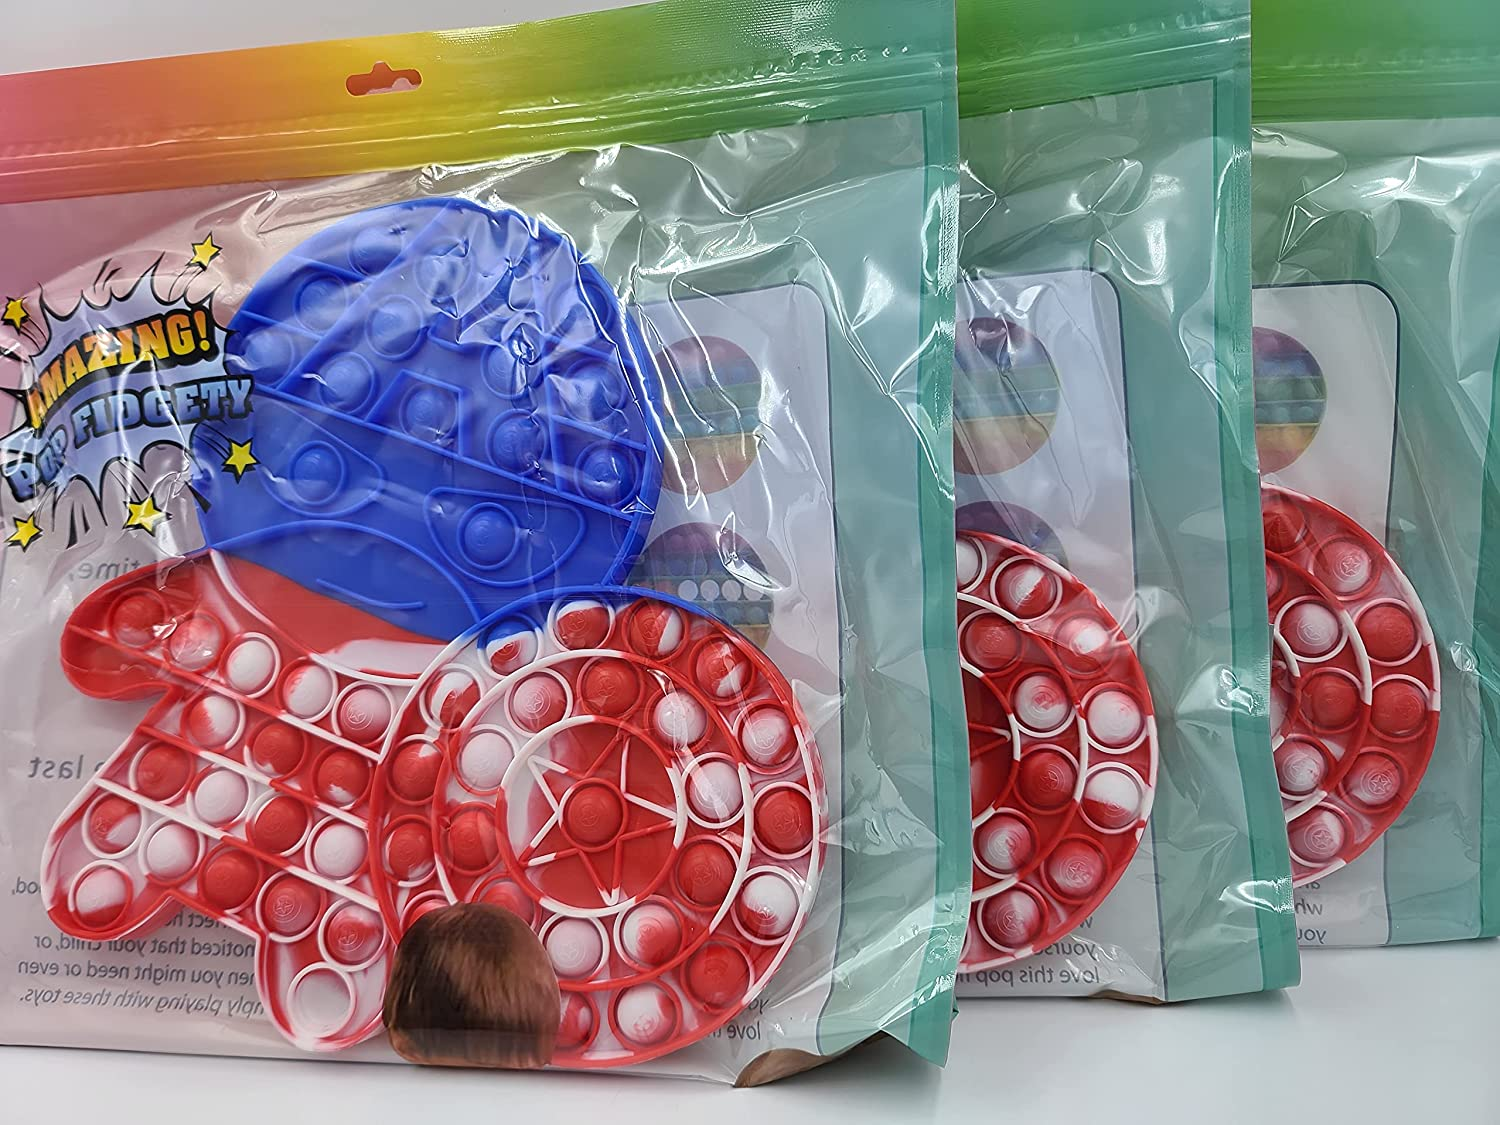 Ohio Trading 3 Pack of Huge Max 64% OFF America Captain Fidget Max 87% OFF Shaped Popper